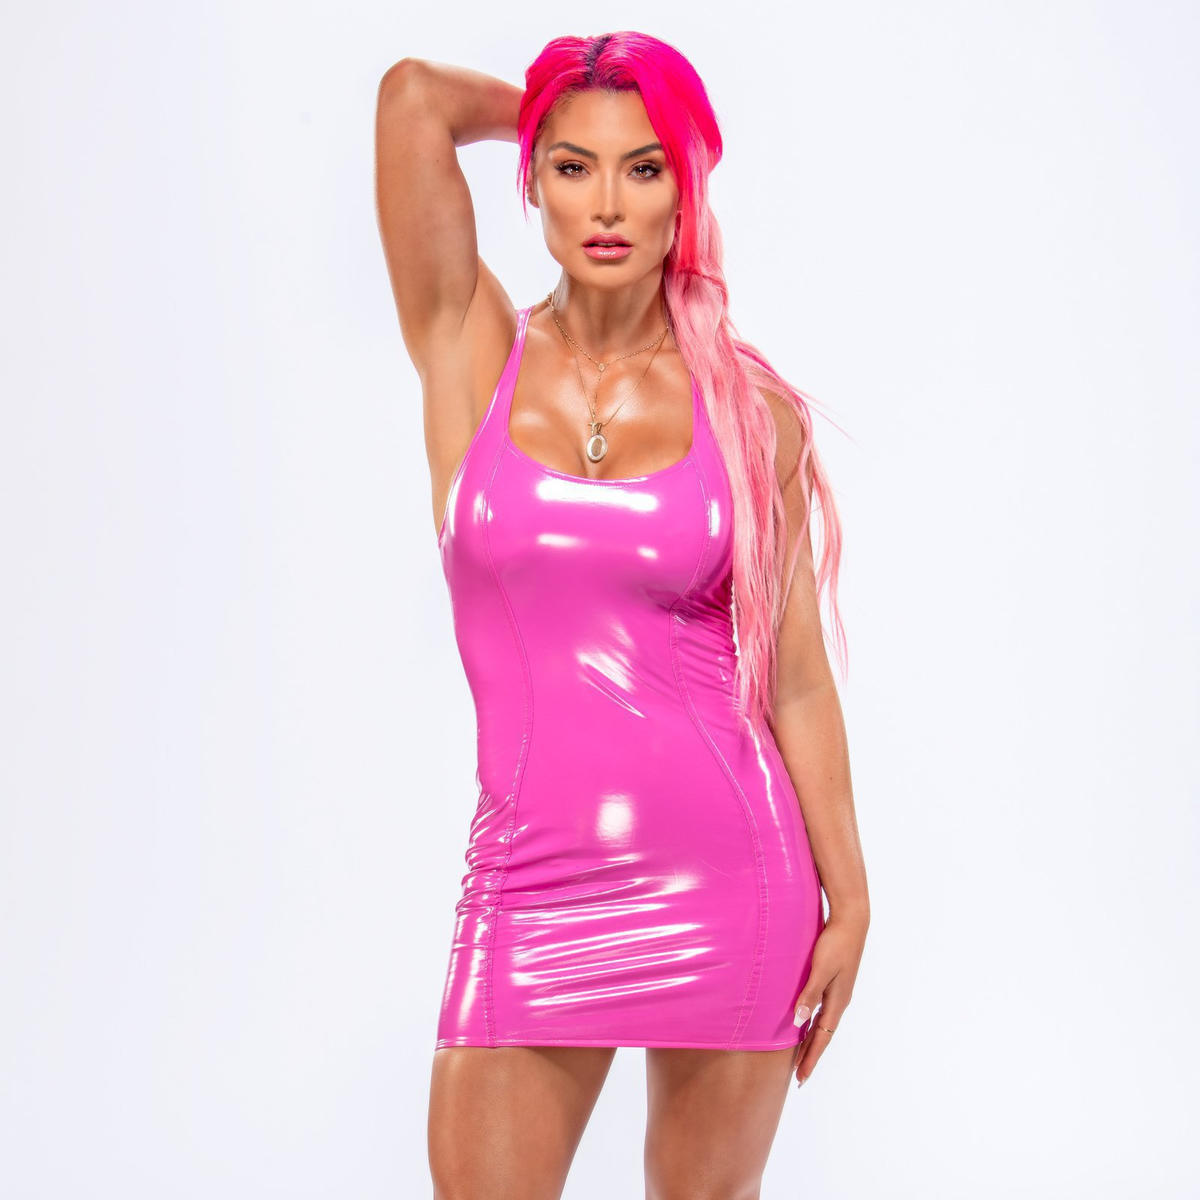 WWE Hypes Eva Marie's Return With Scorching Hot Photos 7